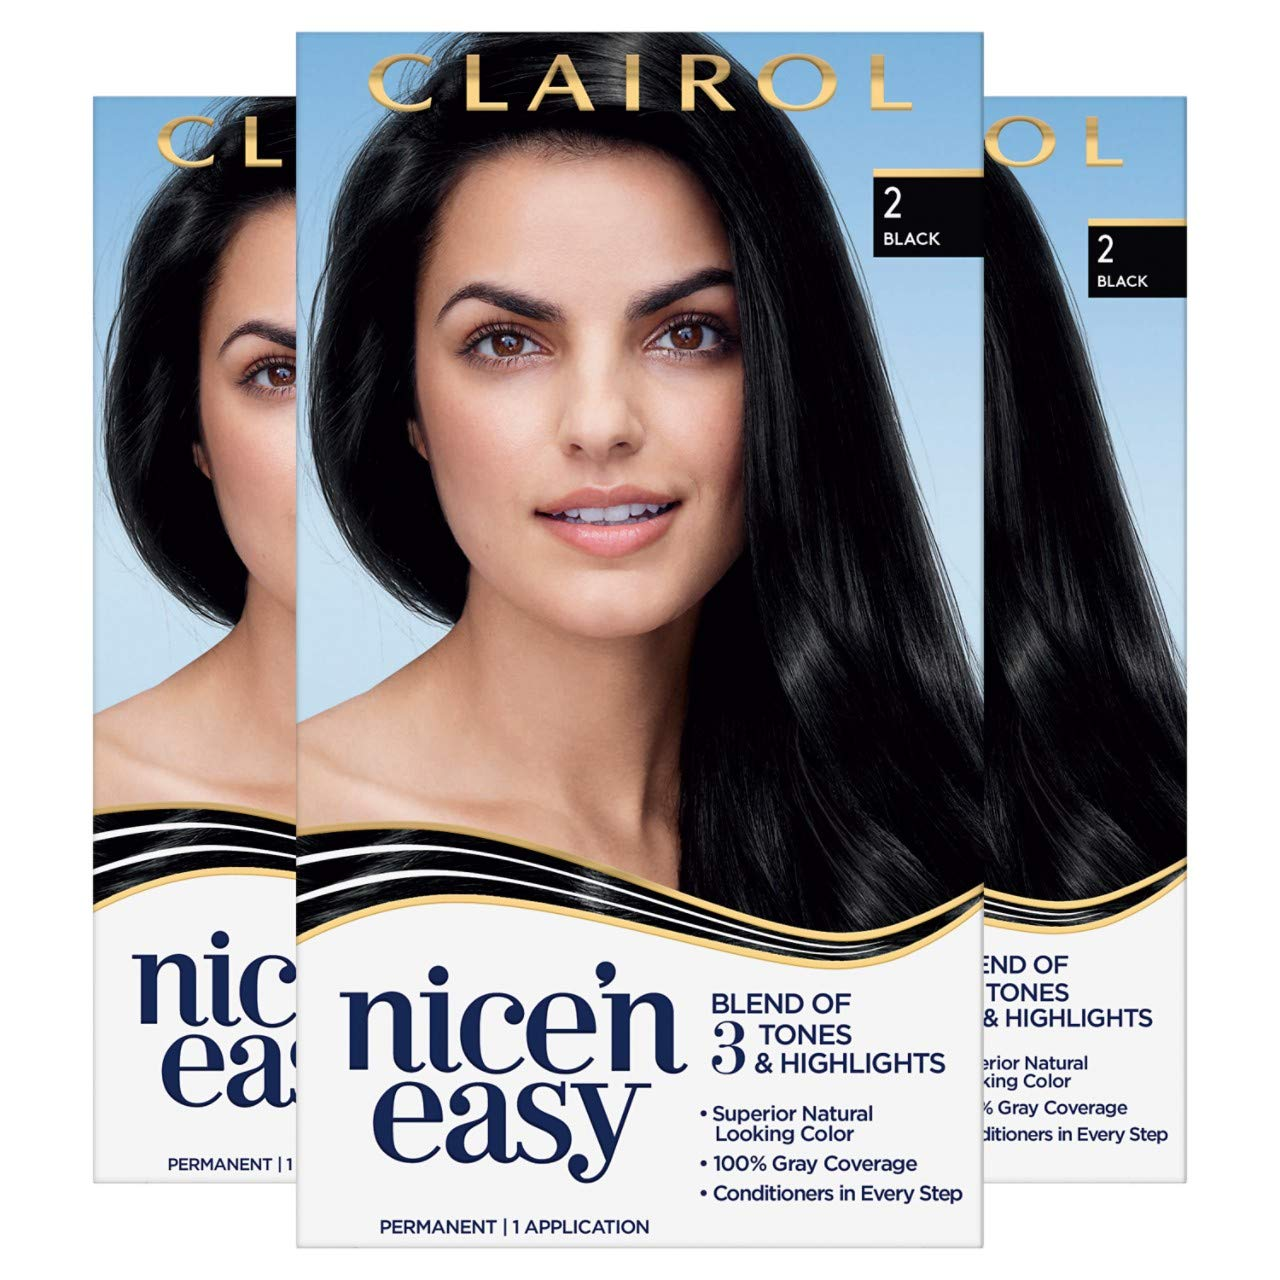 Clairol Nice'n Easy Permanent Hair Color, 2 Black, 3 Count